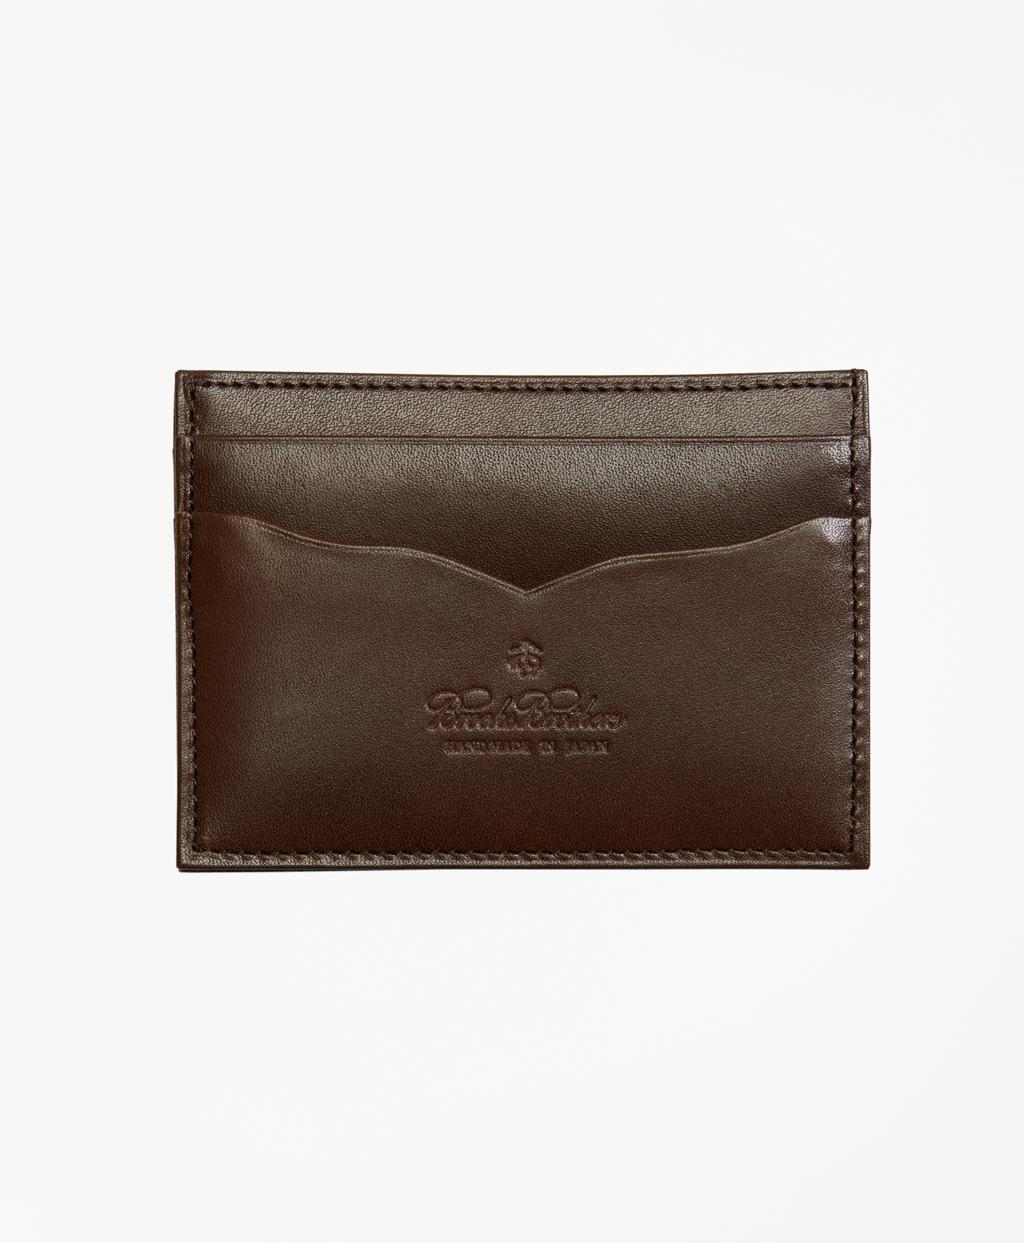 37b5bc1835c Lyst - Brooks Brothers Saffiano Leather Card Case in Brown for Men